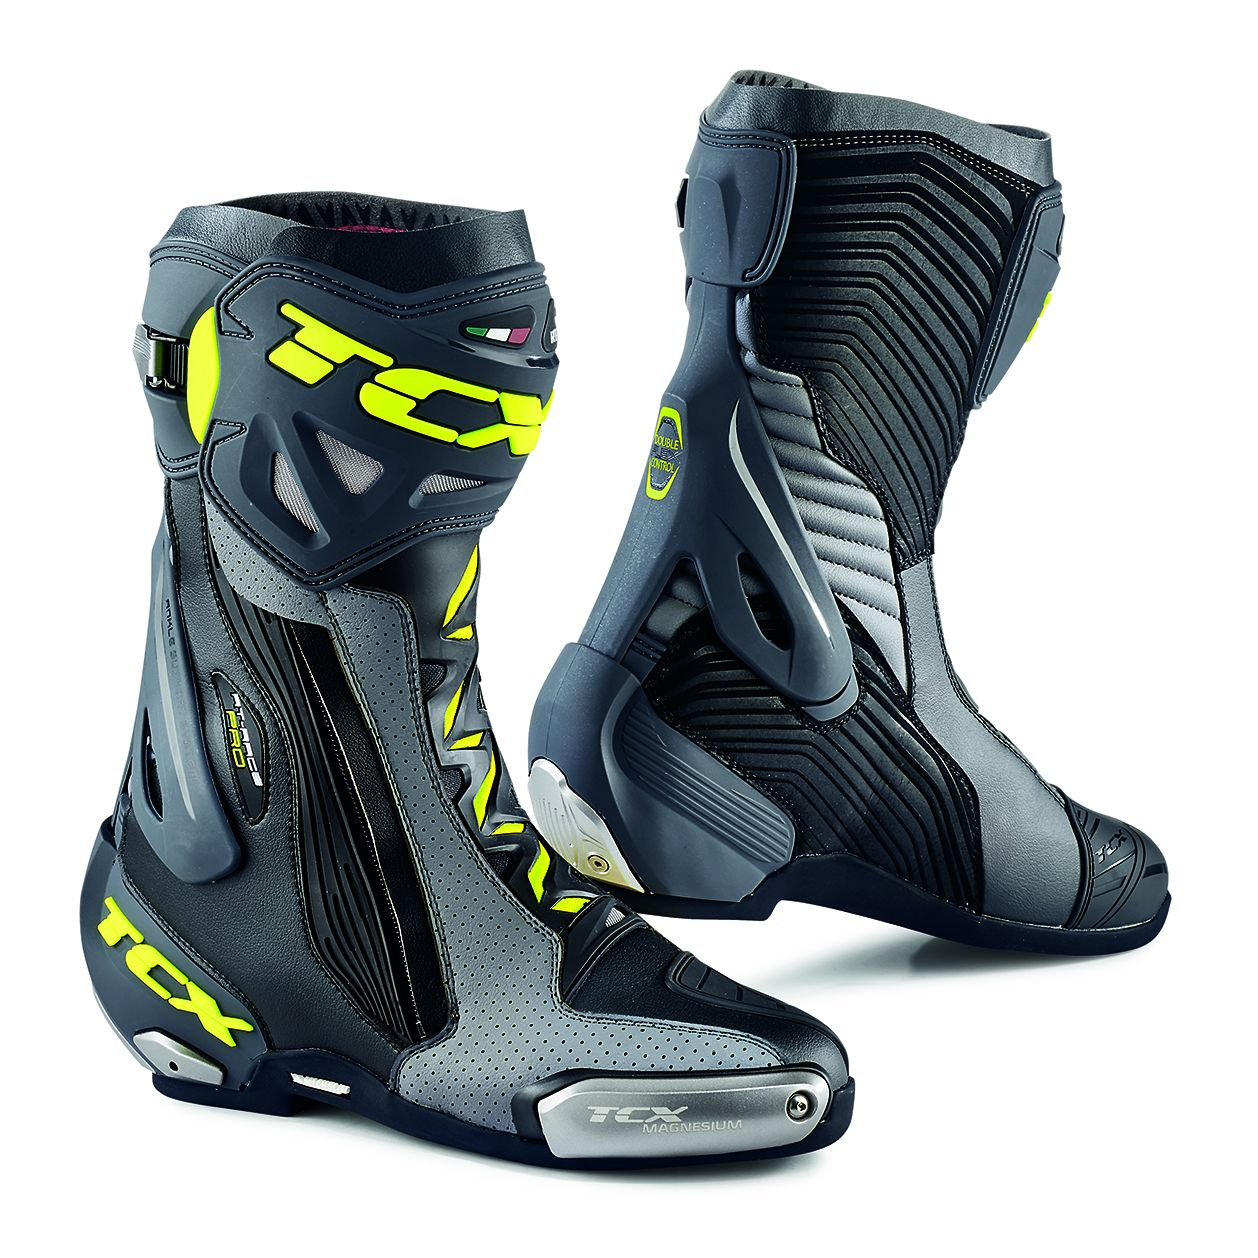 Bottes TCX Boots RT RACE PRO AIR